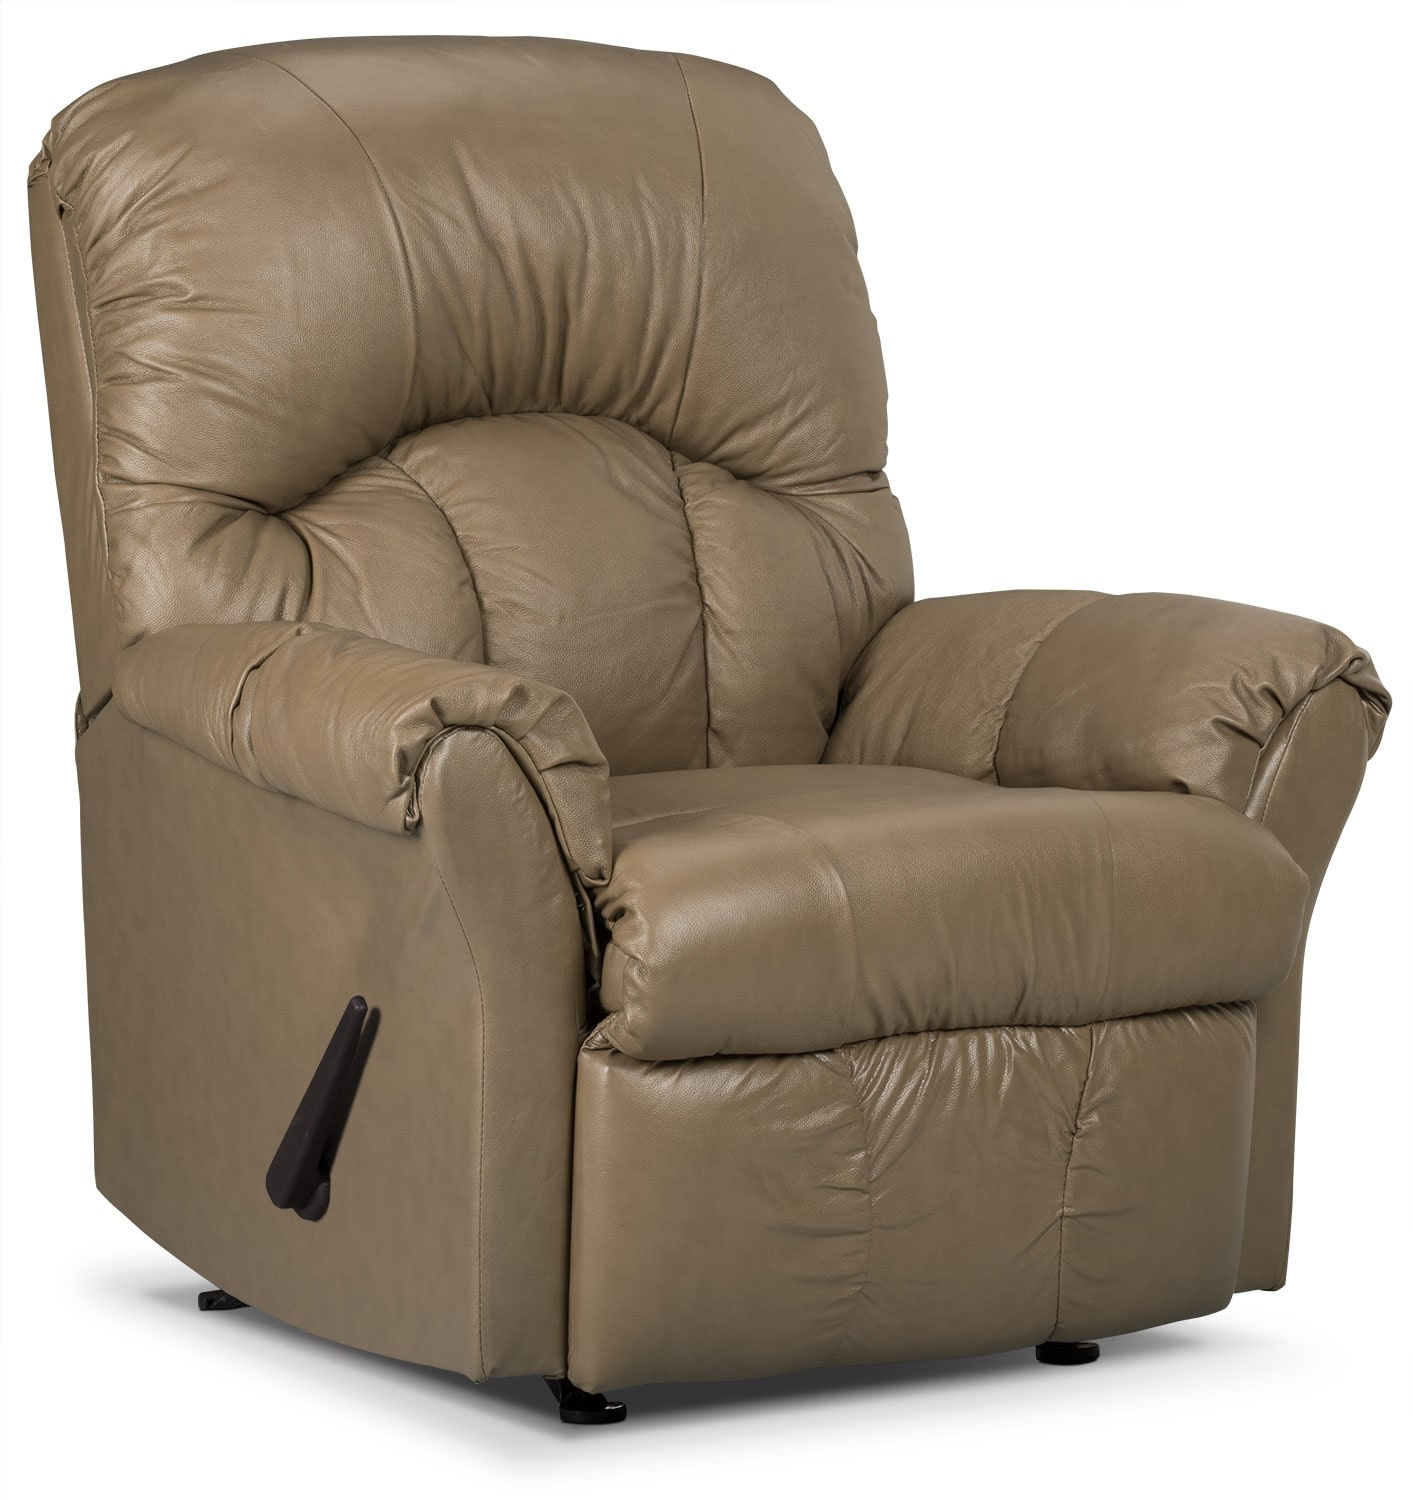 Designed2B Recliner 6734 Genuine Leather Rocker Chair - Buff